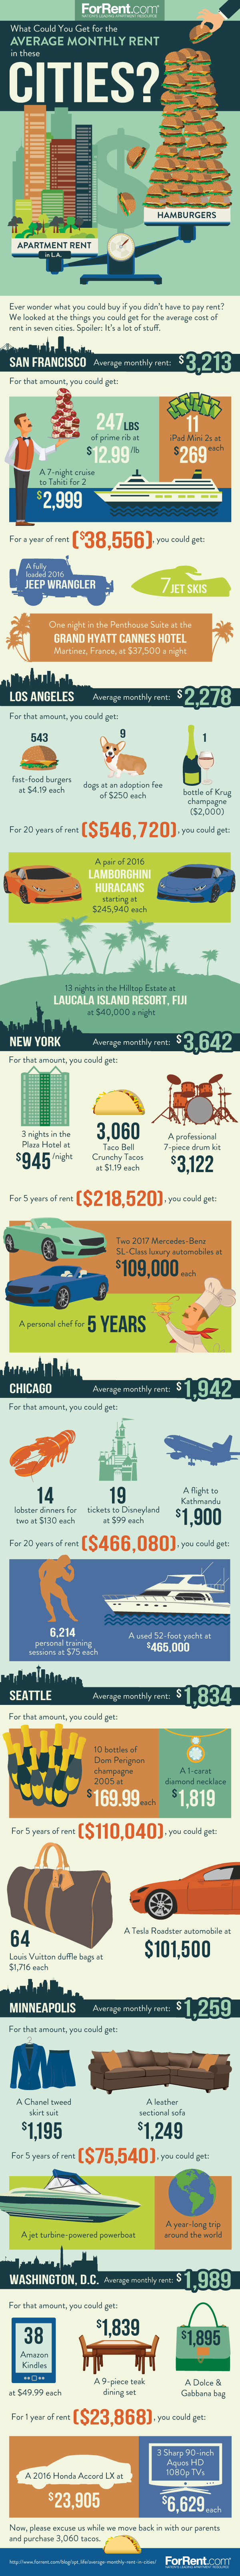 What Could You Get For The Monthly Rent in These Cities?